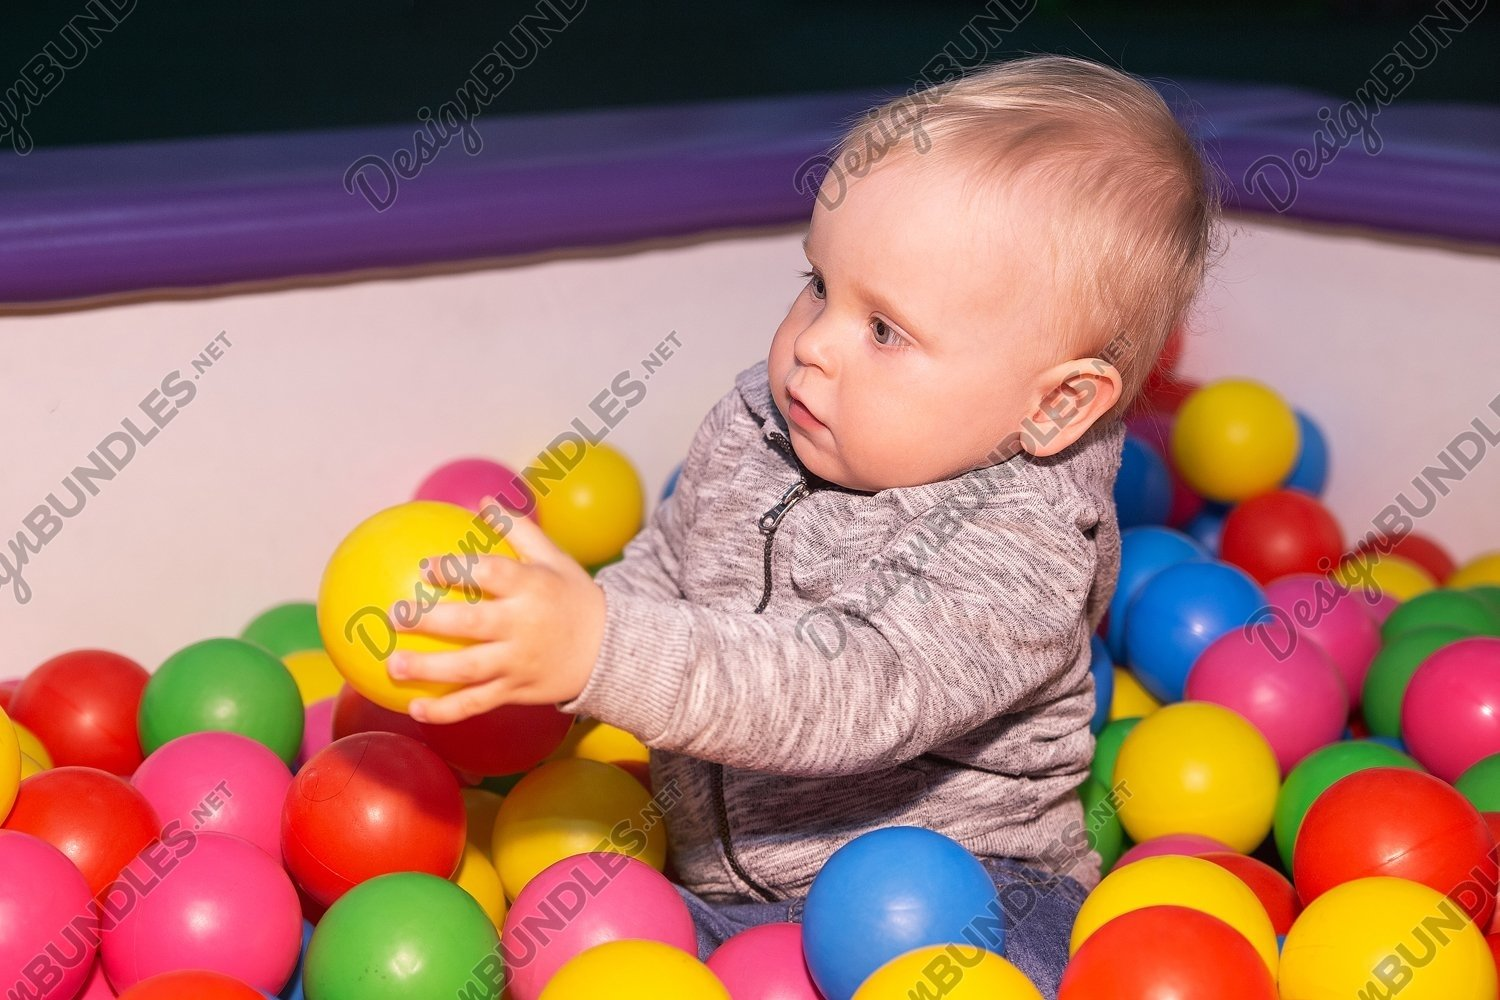 Photo of a baby boy plays with colorful balls in playground example image 1